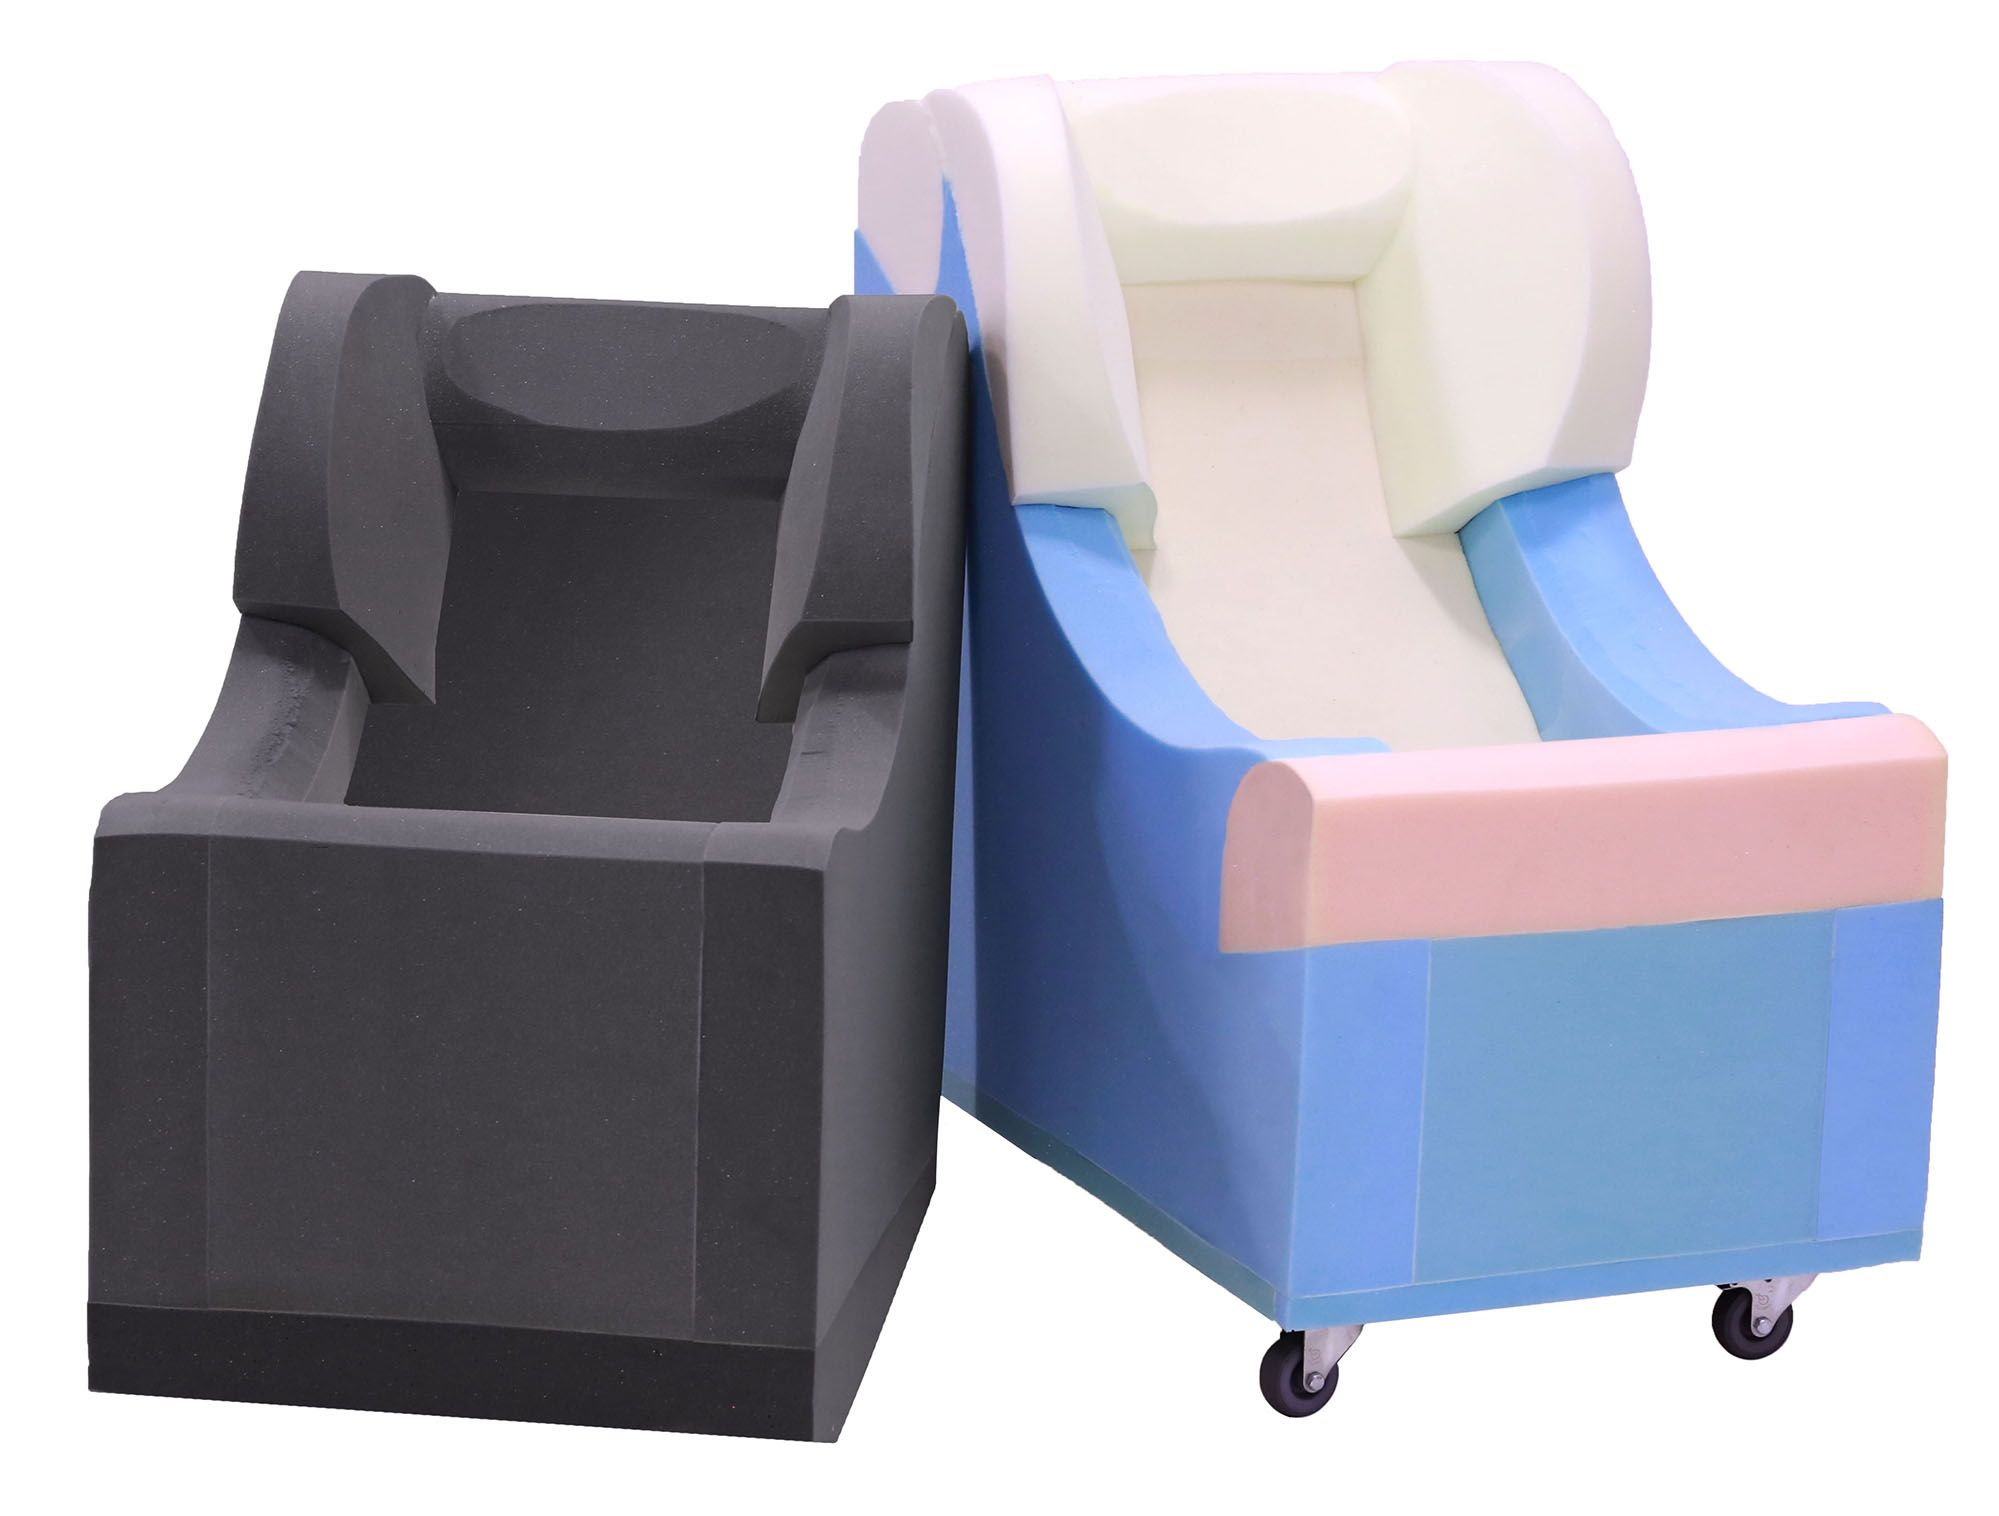 Foam baby chairs - Regular And Comfort Foam Chill Out Chair From Freedom Concepts Comes With